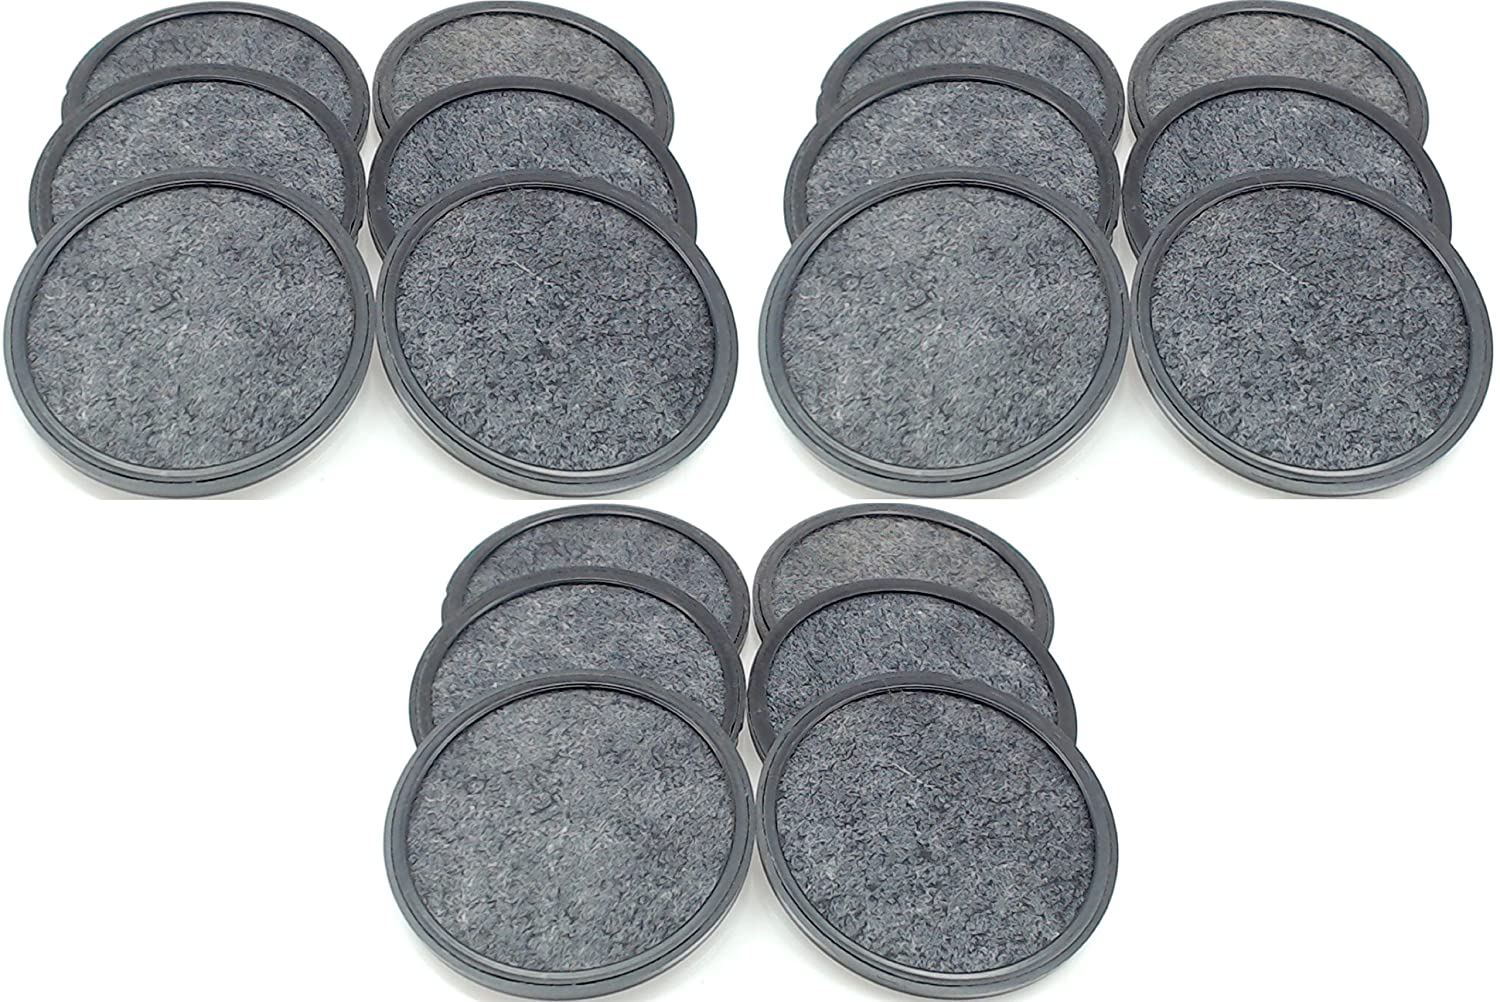 3 X Water Filter Replacement 6pk for Mr Coffee, 18 Filters